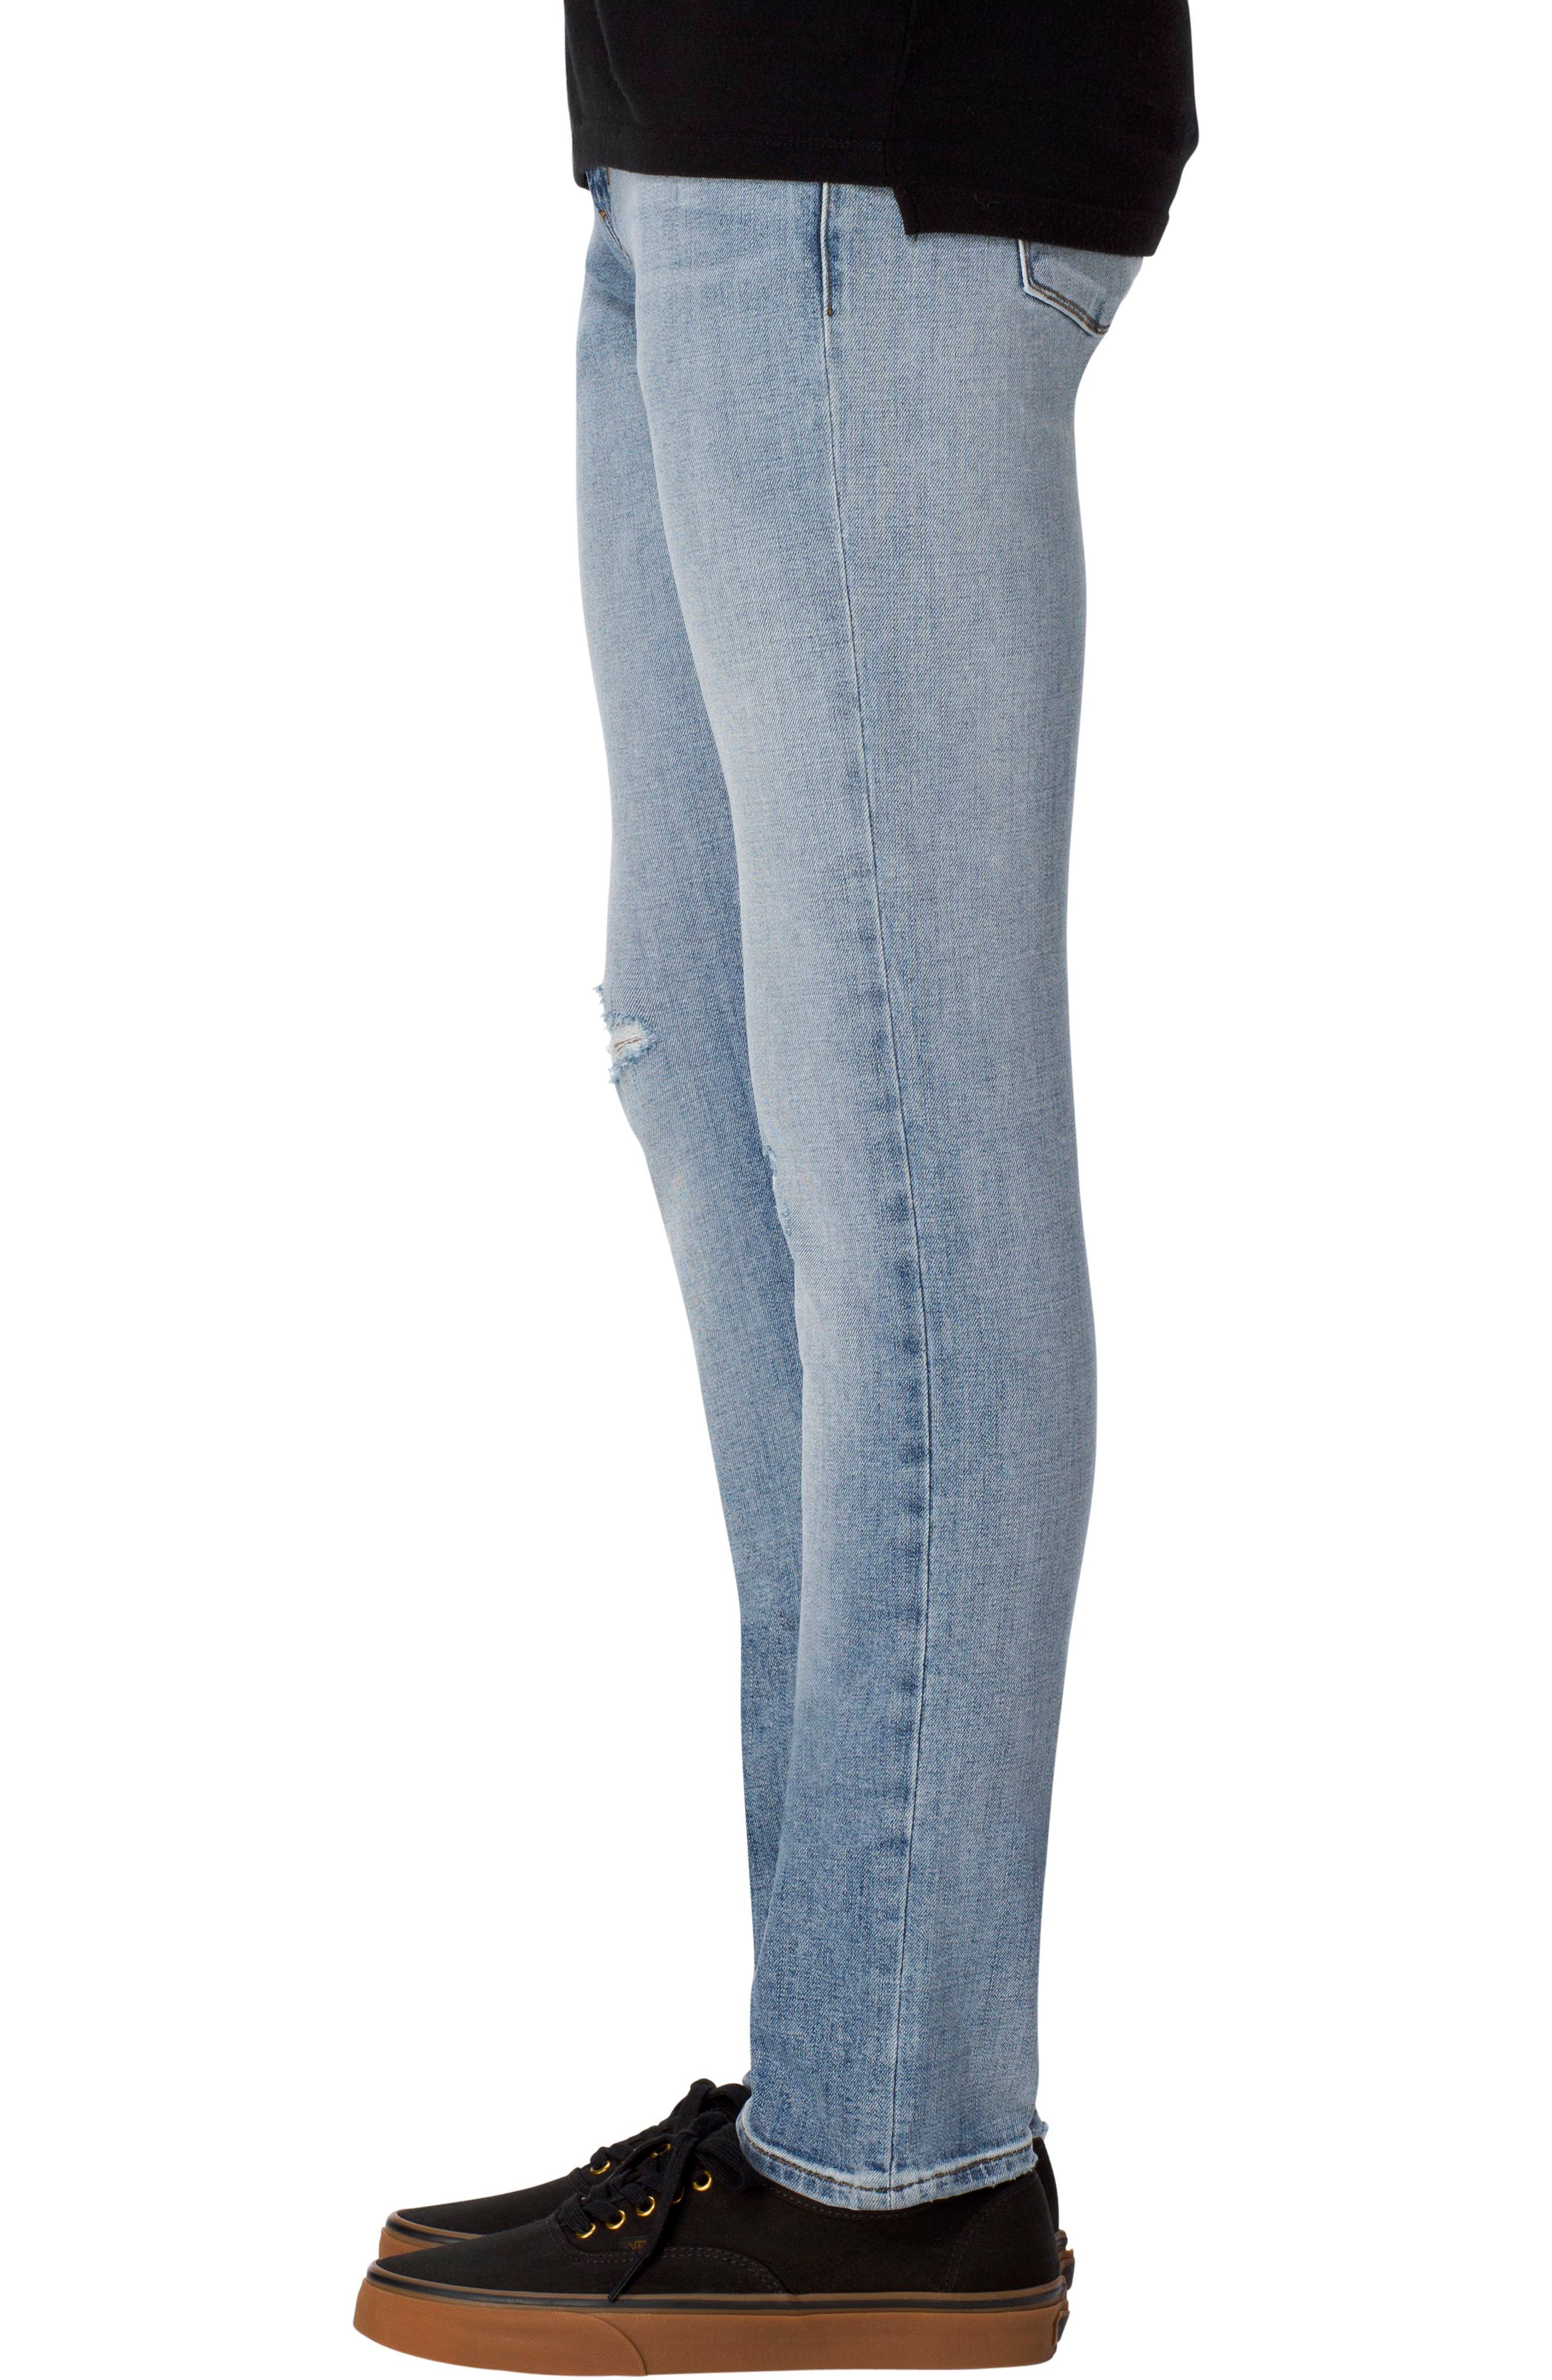 Mick Skinny Fit Jeans,                             Alternate thumbnail 3, color,                             Astroid